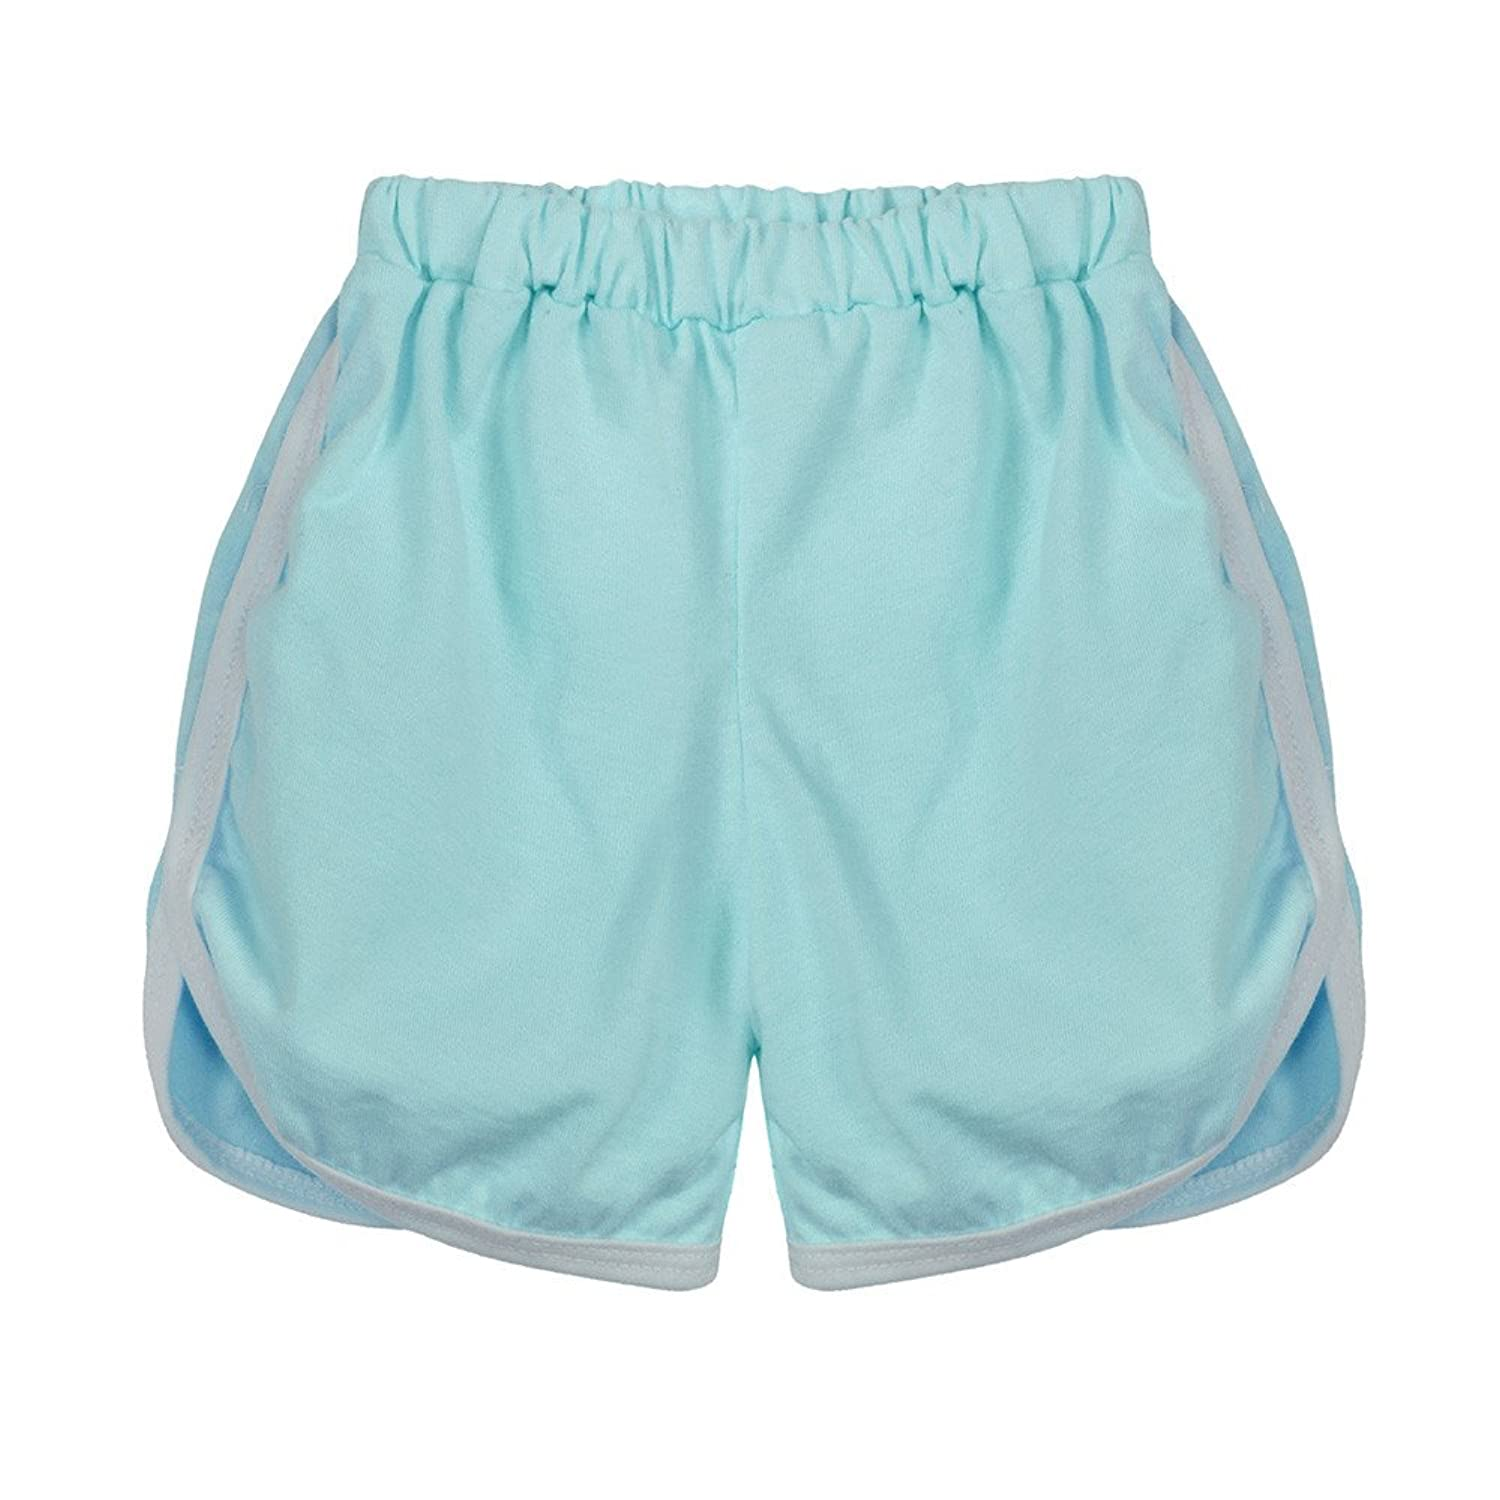 0c3336e287 Clearance Sale! Fashion Summer Clothes Children Cotton Shorts Boys And Girl  Baby Pants ☆❤womens bathing suits shorts lifting shorts boy shorts girls  white ...